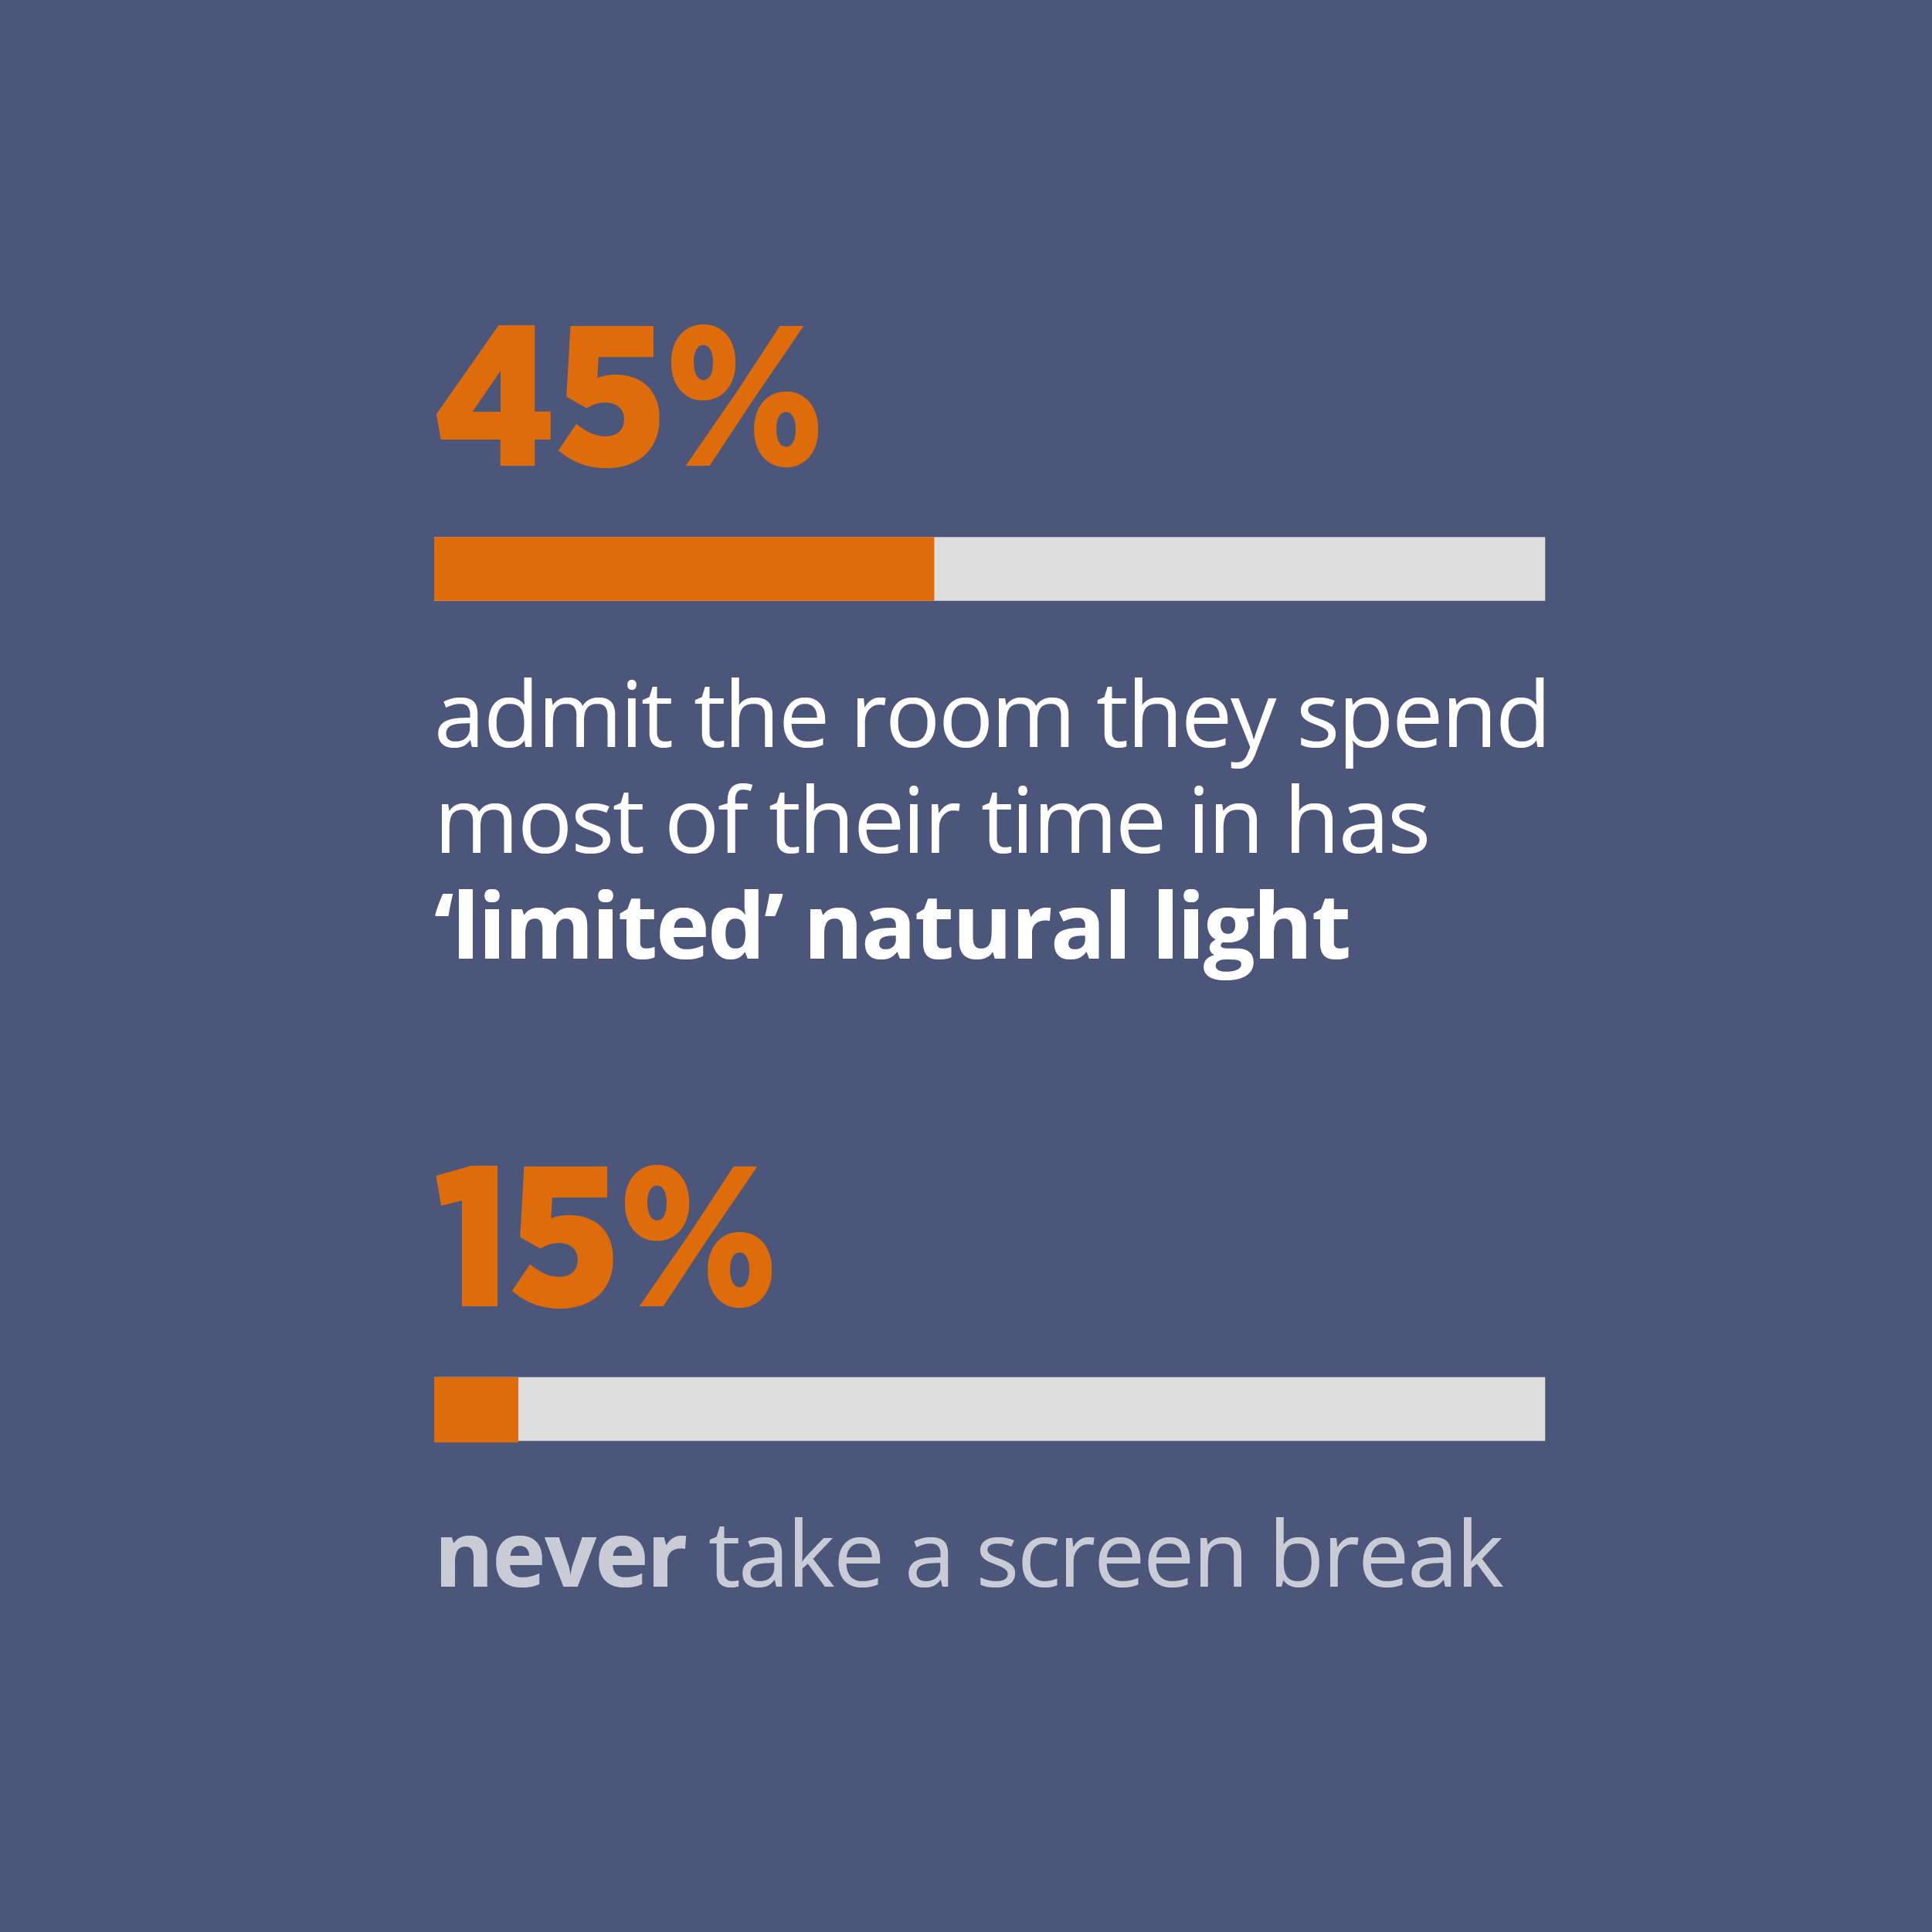 45% admit room they spend in has limited natural light and 15% never take a screen break